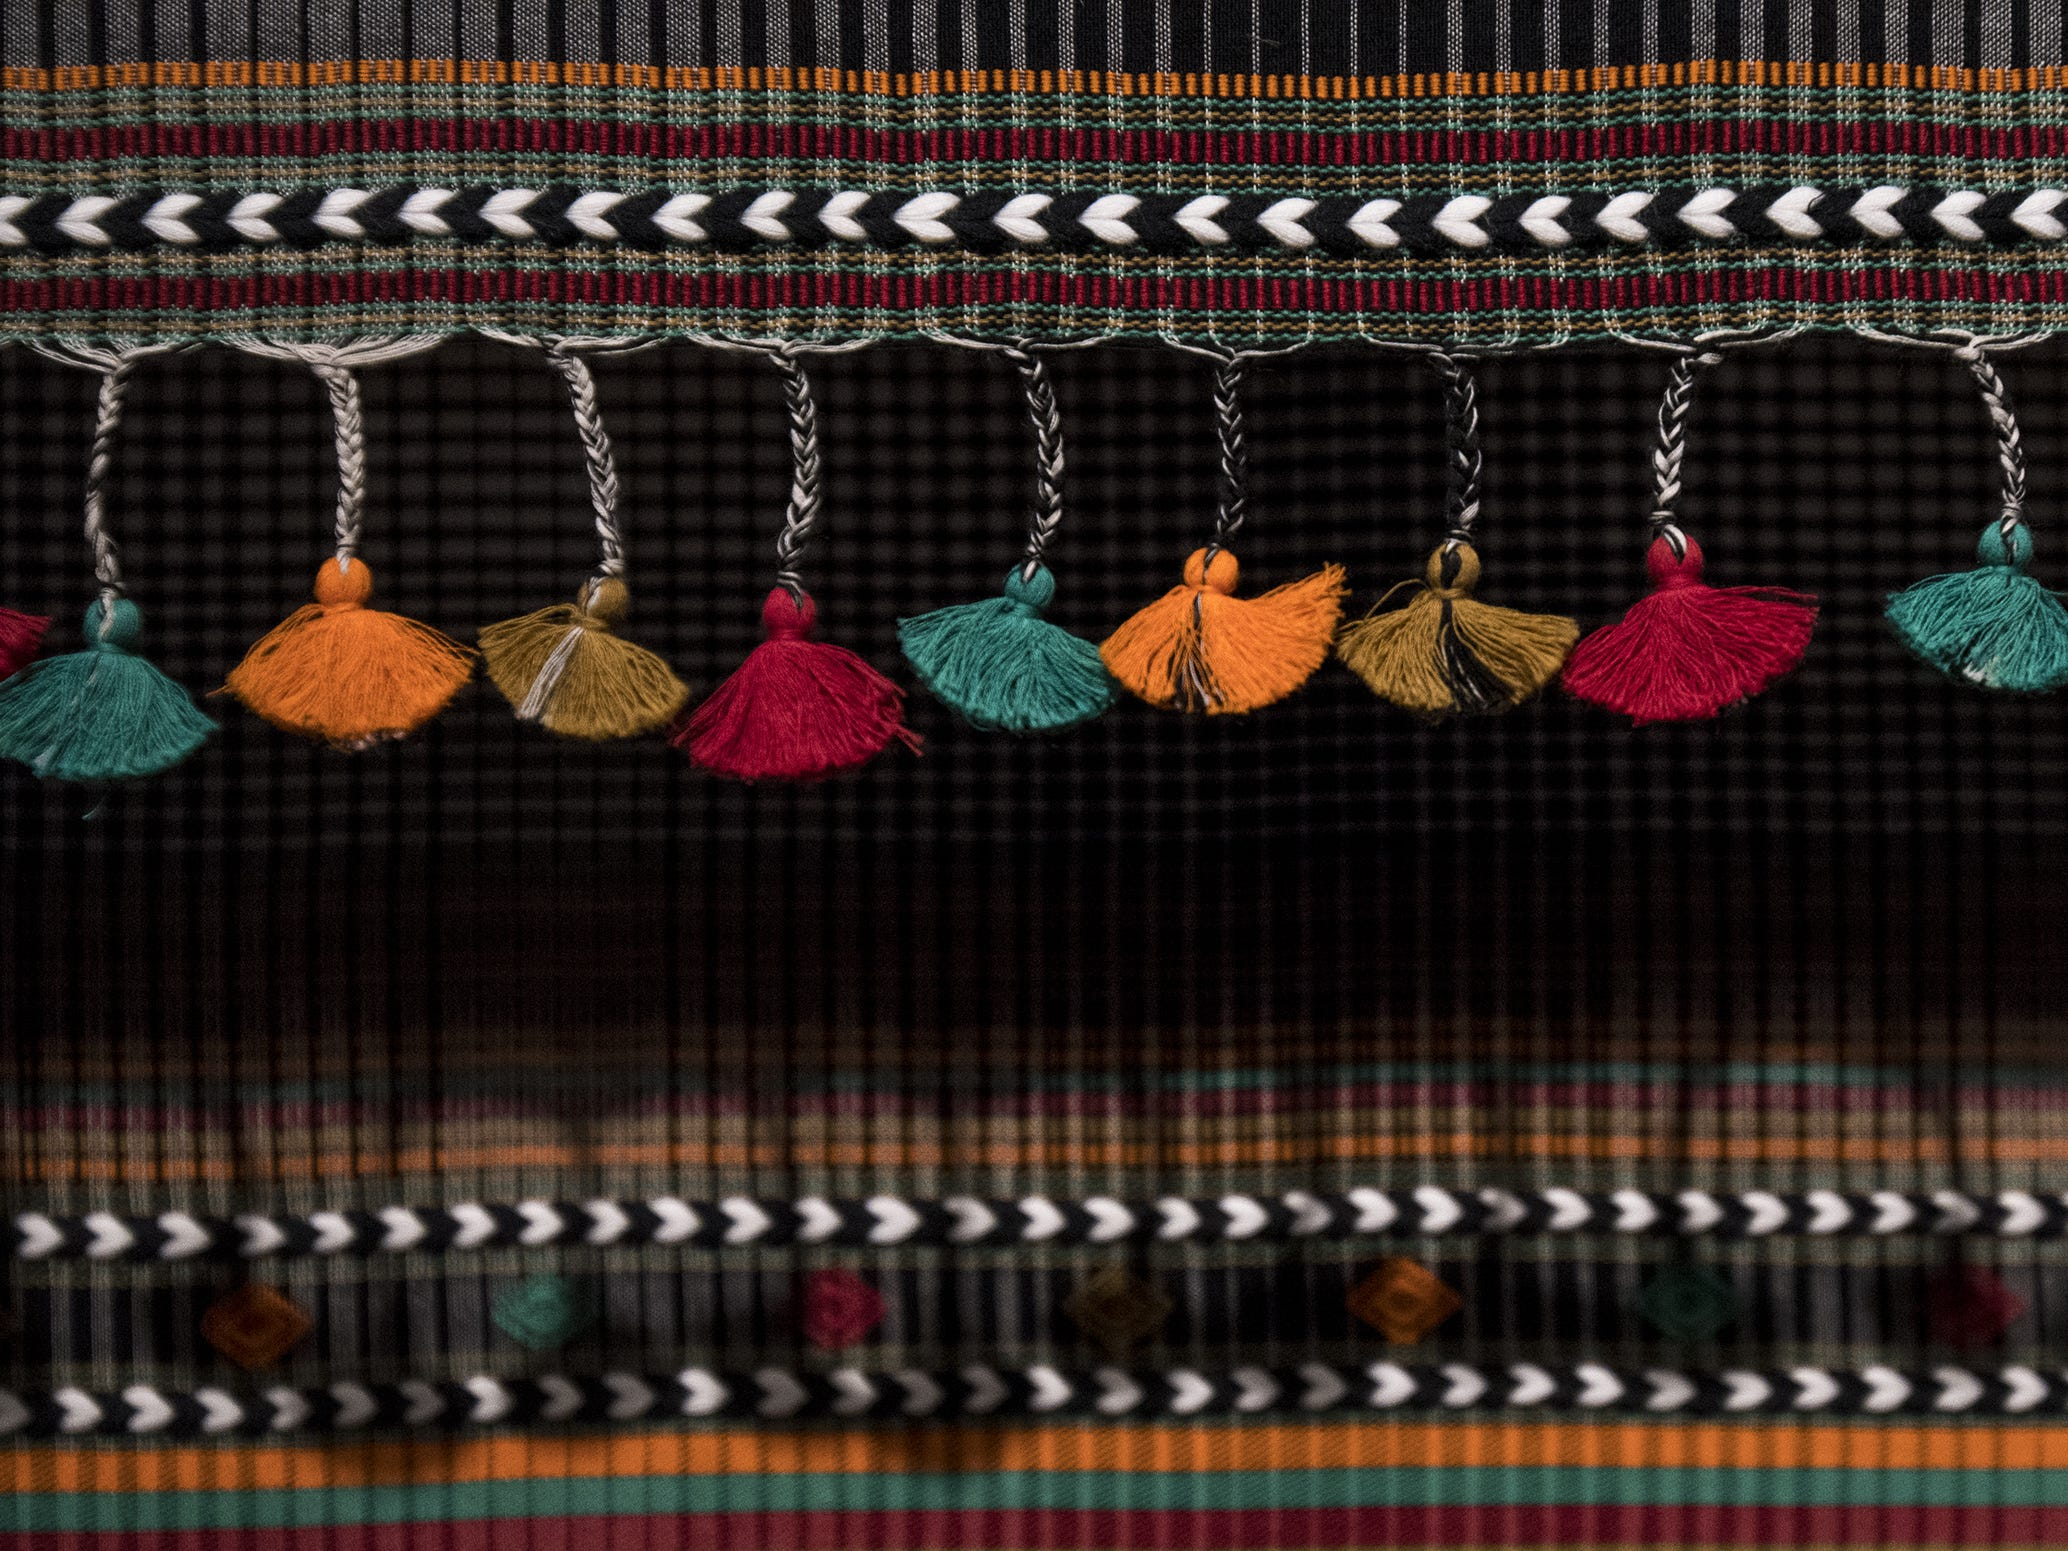 This Kabari-Style stole by Dyalal Kudecha is a part of the new Fabrics of India exhibit at the Cincinnati Art Museum.